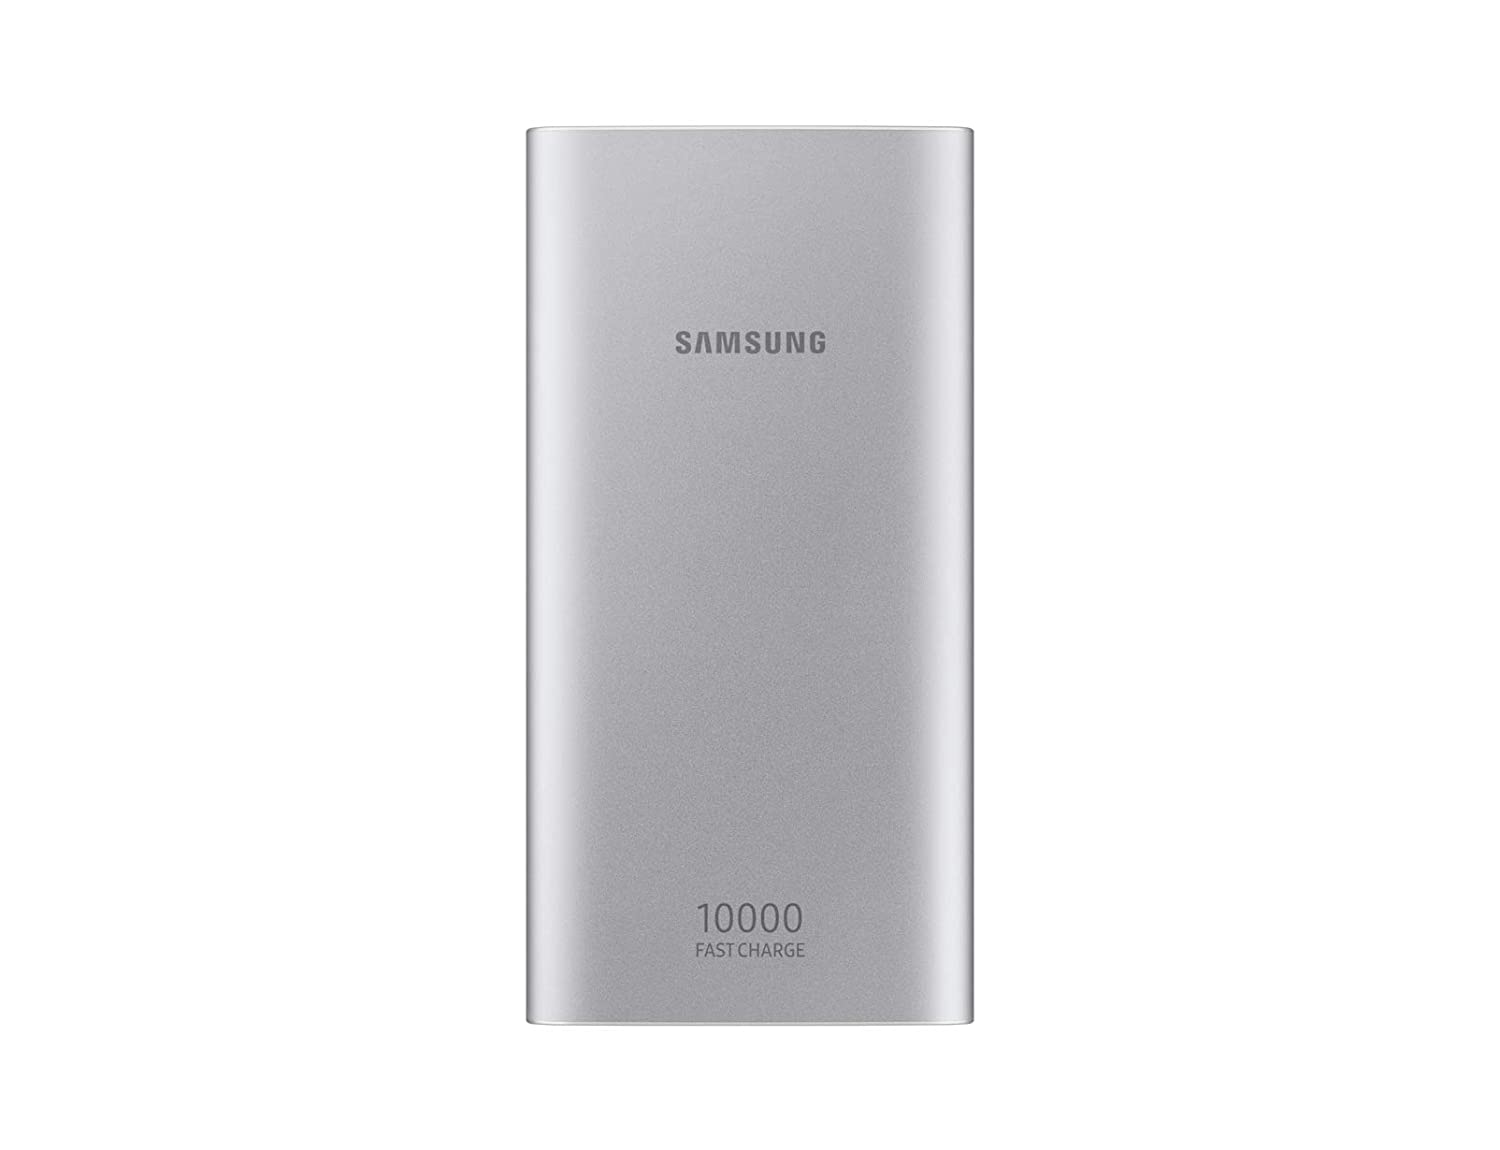 Samsung 10000mAH Lithium Ion Power Bank